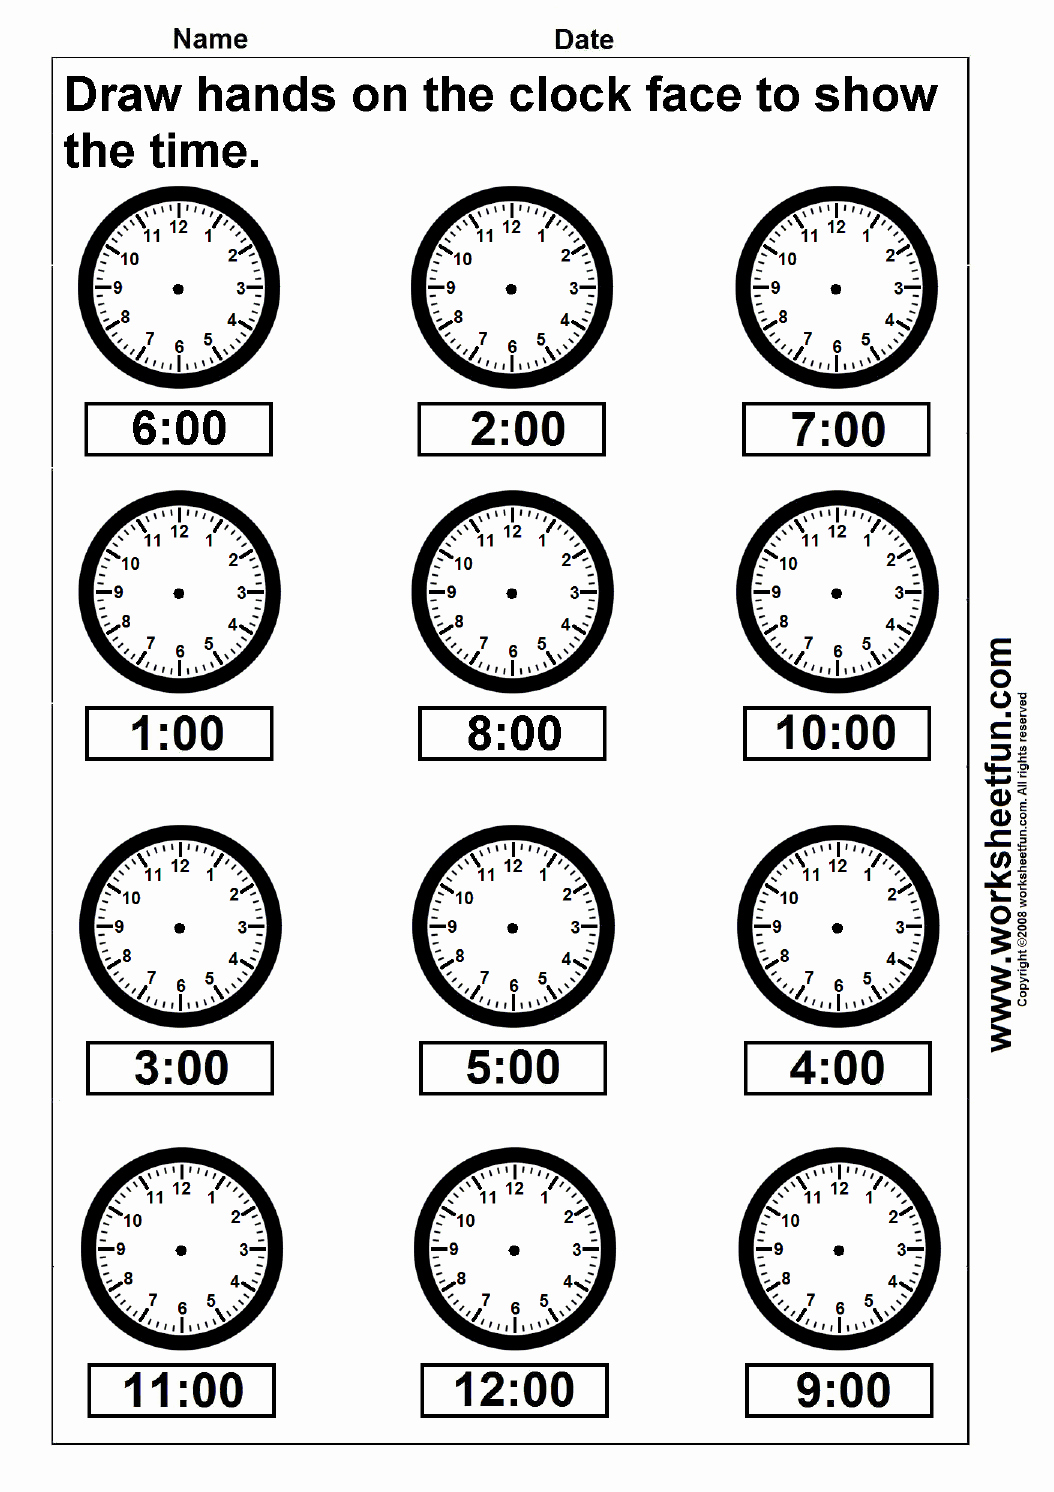 Hands On Equations Worksheet Unique Time – Draw Hands On the Clock Face – 4 Worksheets Free